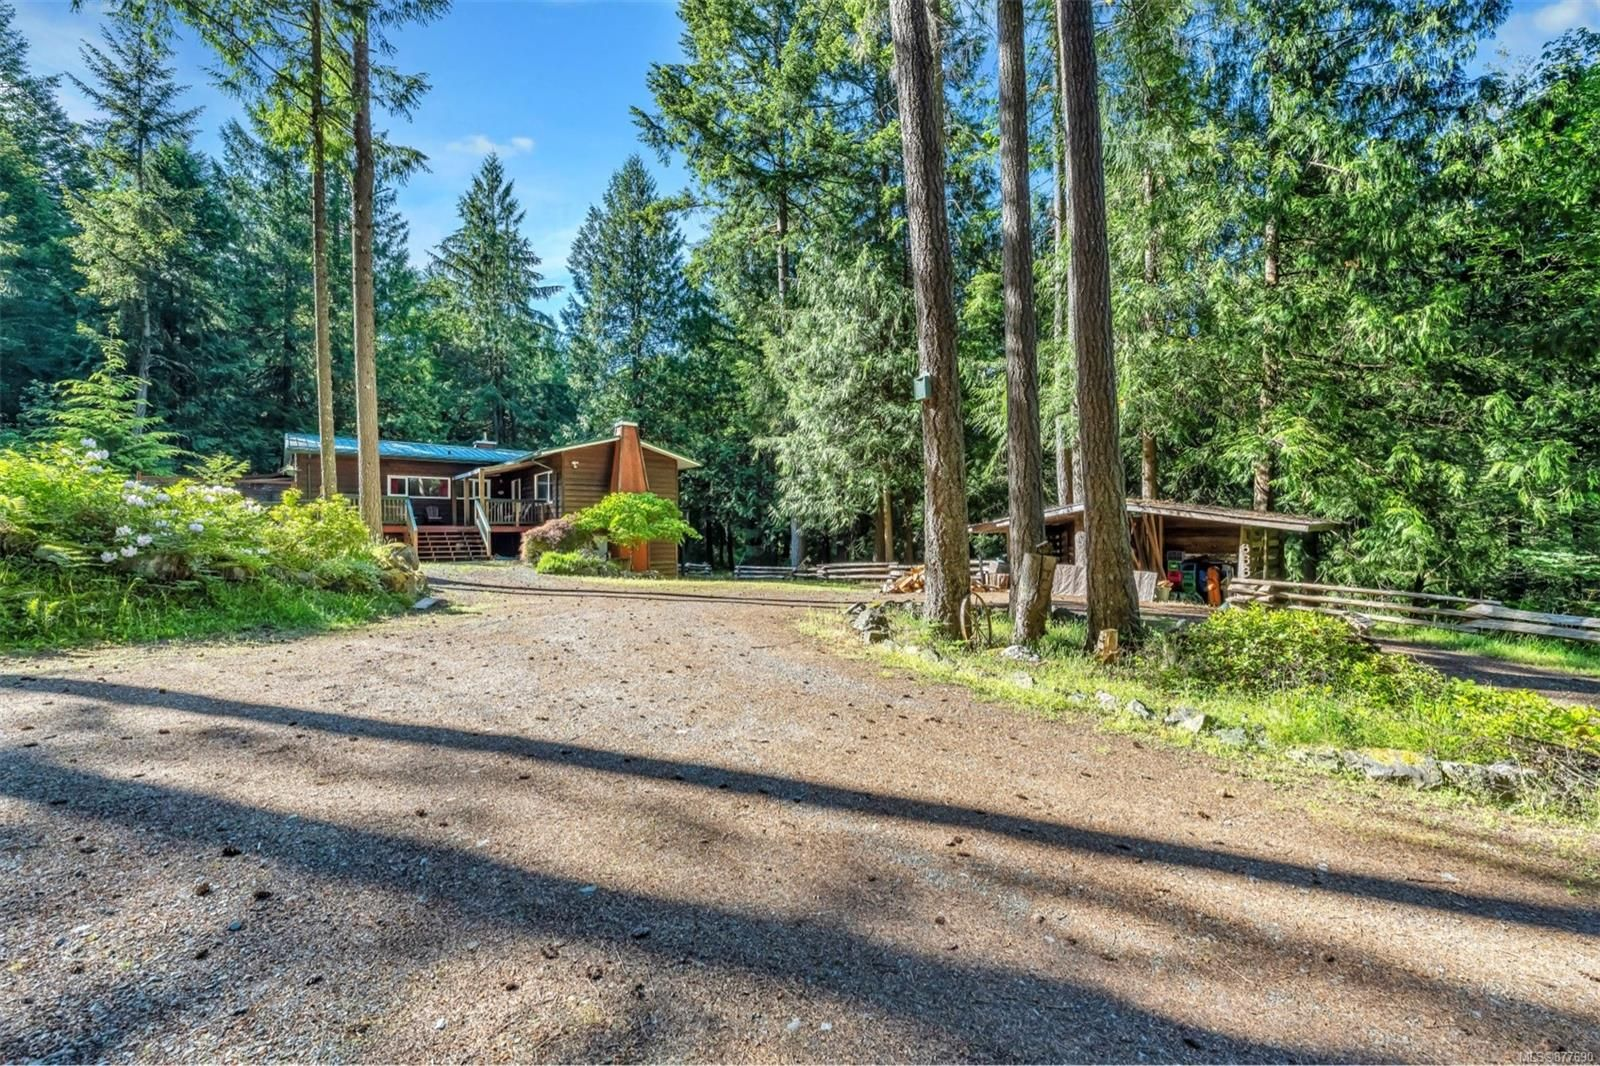 Main Photo: 1752 Peerless Rd in : ML Cobble Hill House for sale (Malahat & Area)  : MLS®# 877690